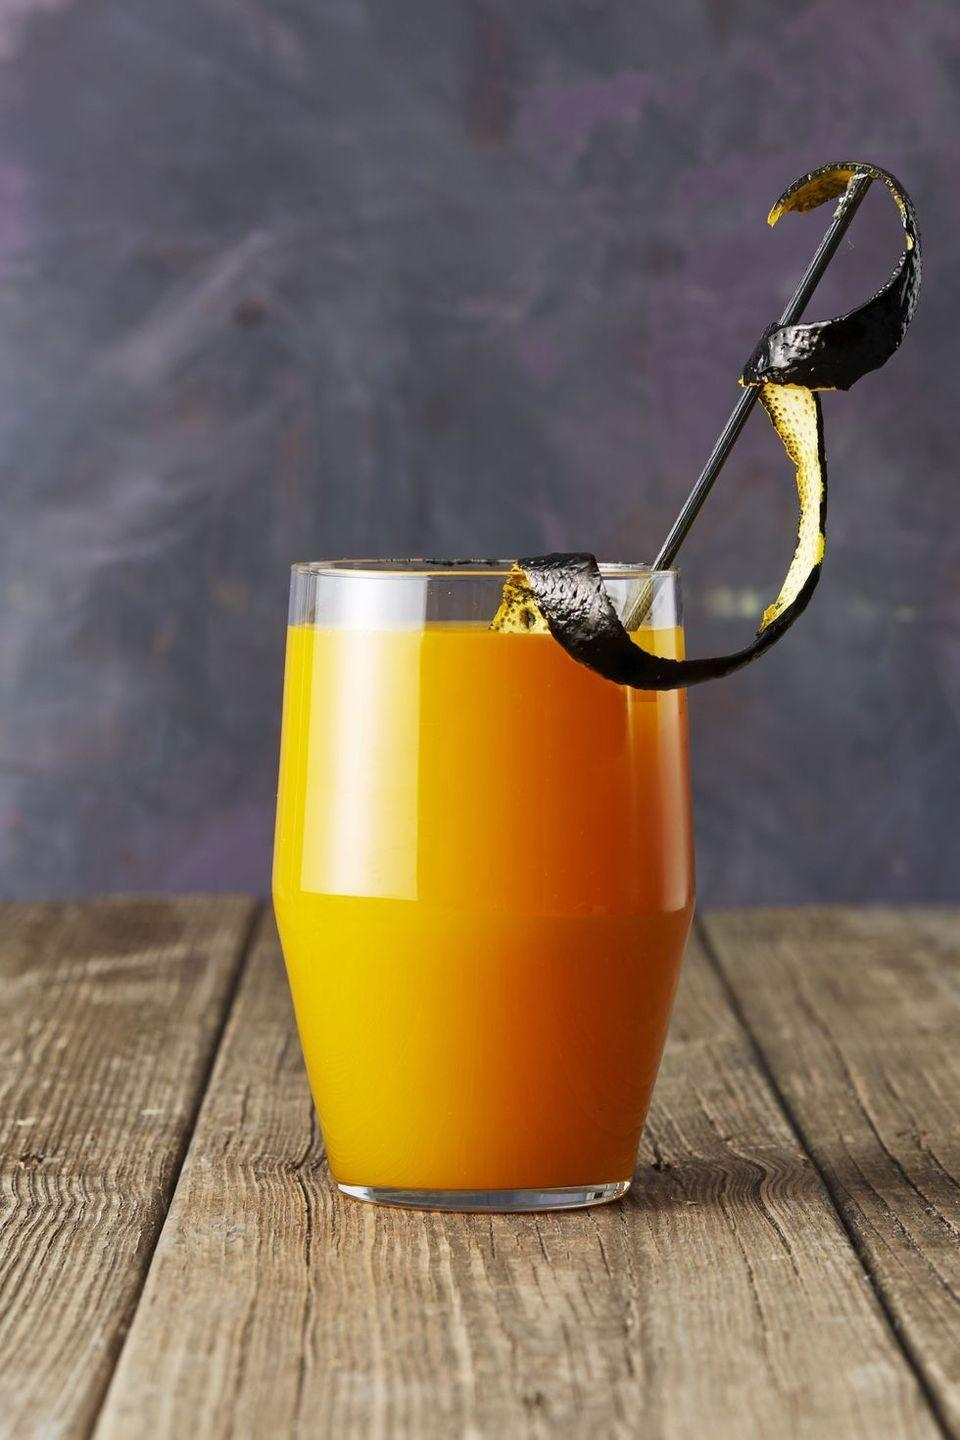 """<p>Apricot nectar and bourbon aren't exactly a combination you'd think to put together. But you try it, you'll see that this fruity, spiced drink is perfect for fall.</p><p><em><a href=""""https://www.goodhousekeeping.com/food-recipes/a46066/apricot-bourbon-brew-recipe/"""" rel=""""nofollow noopener"""" target=""""_blank"""" data-ylk=""""slk:Get the recipe for Apricot Bourbon Brew »"""" class=""""link rapid-noclick-resp"""">Get the recipe for Apricot Bourbon Brew »</a></em></p>"""